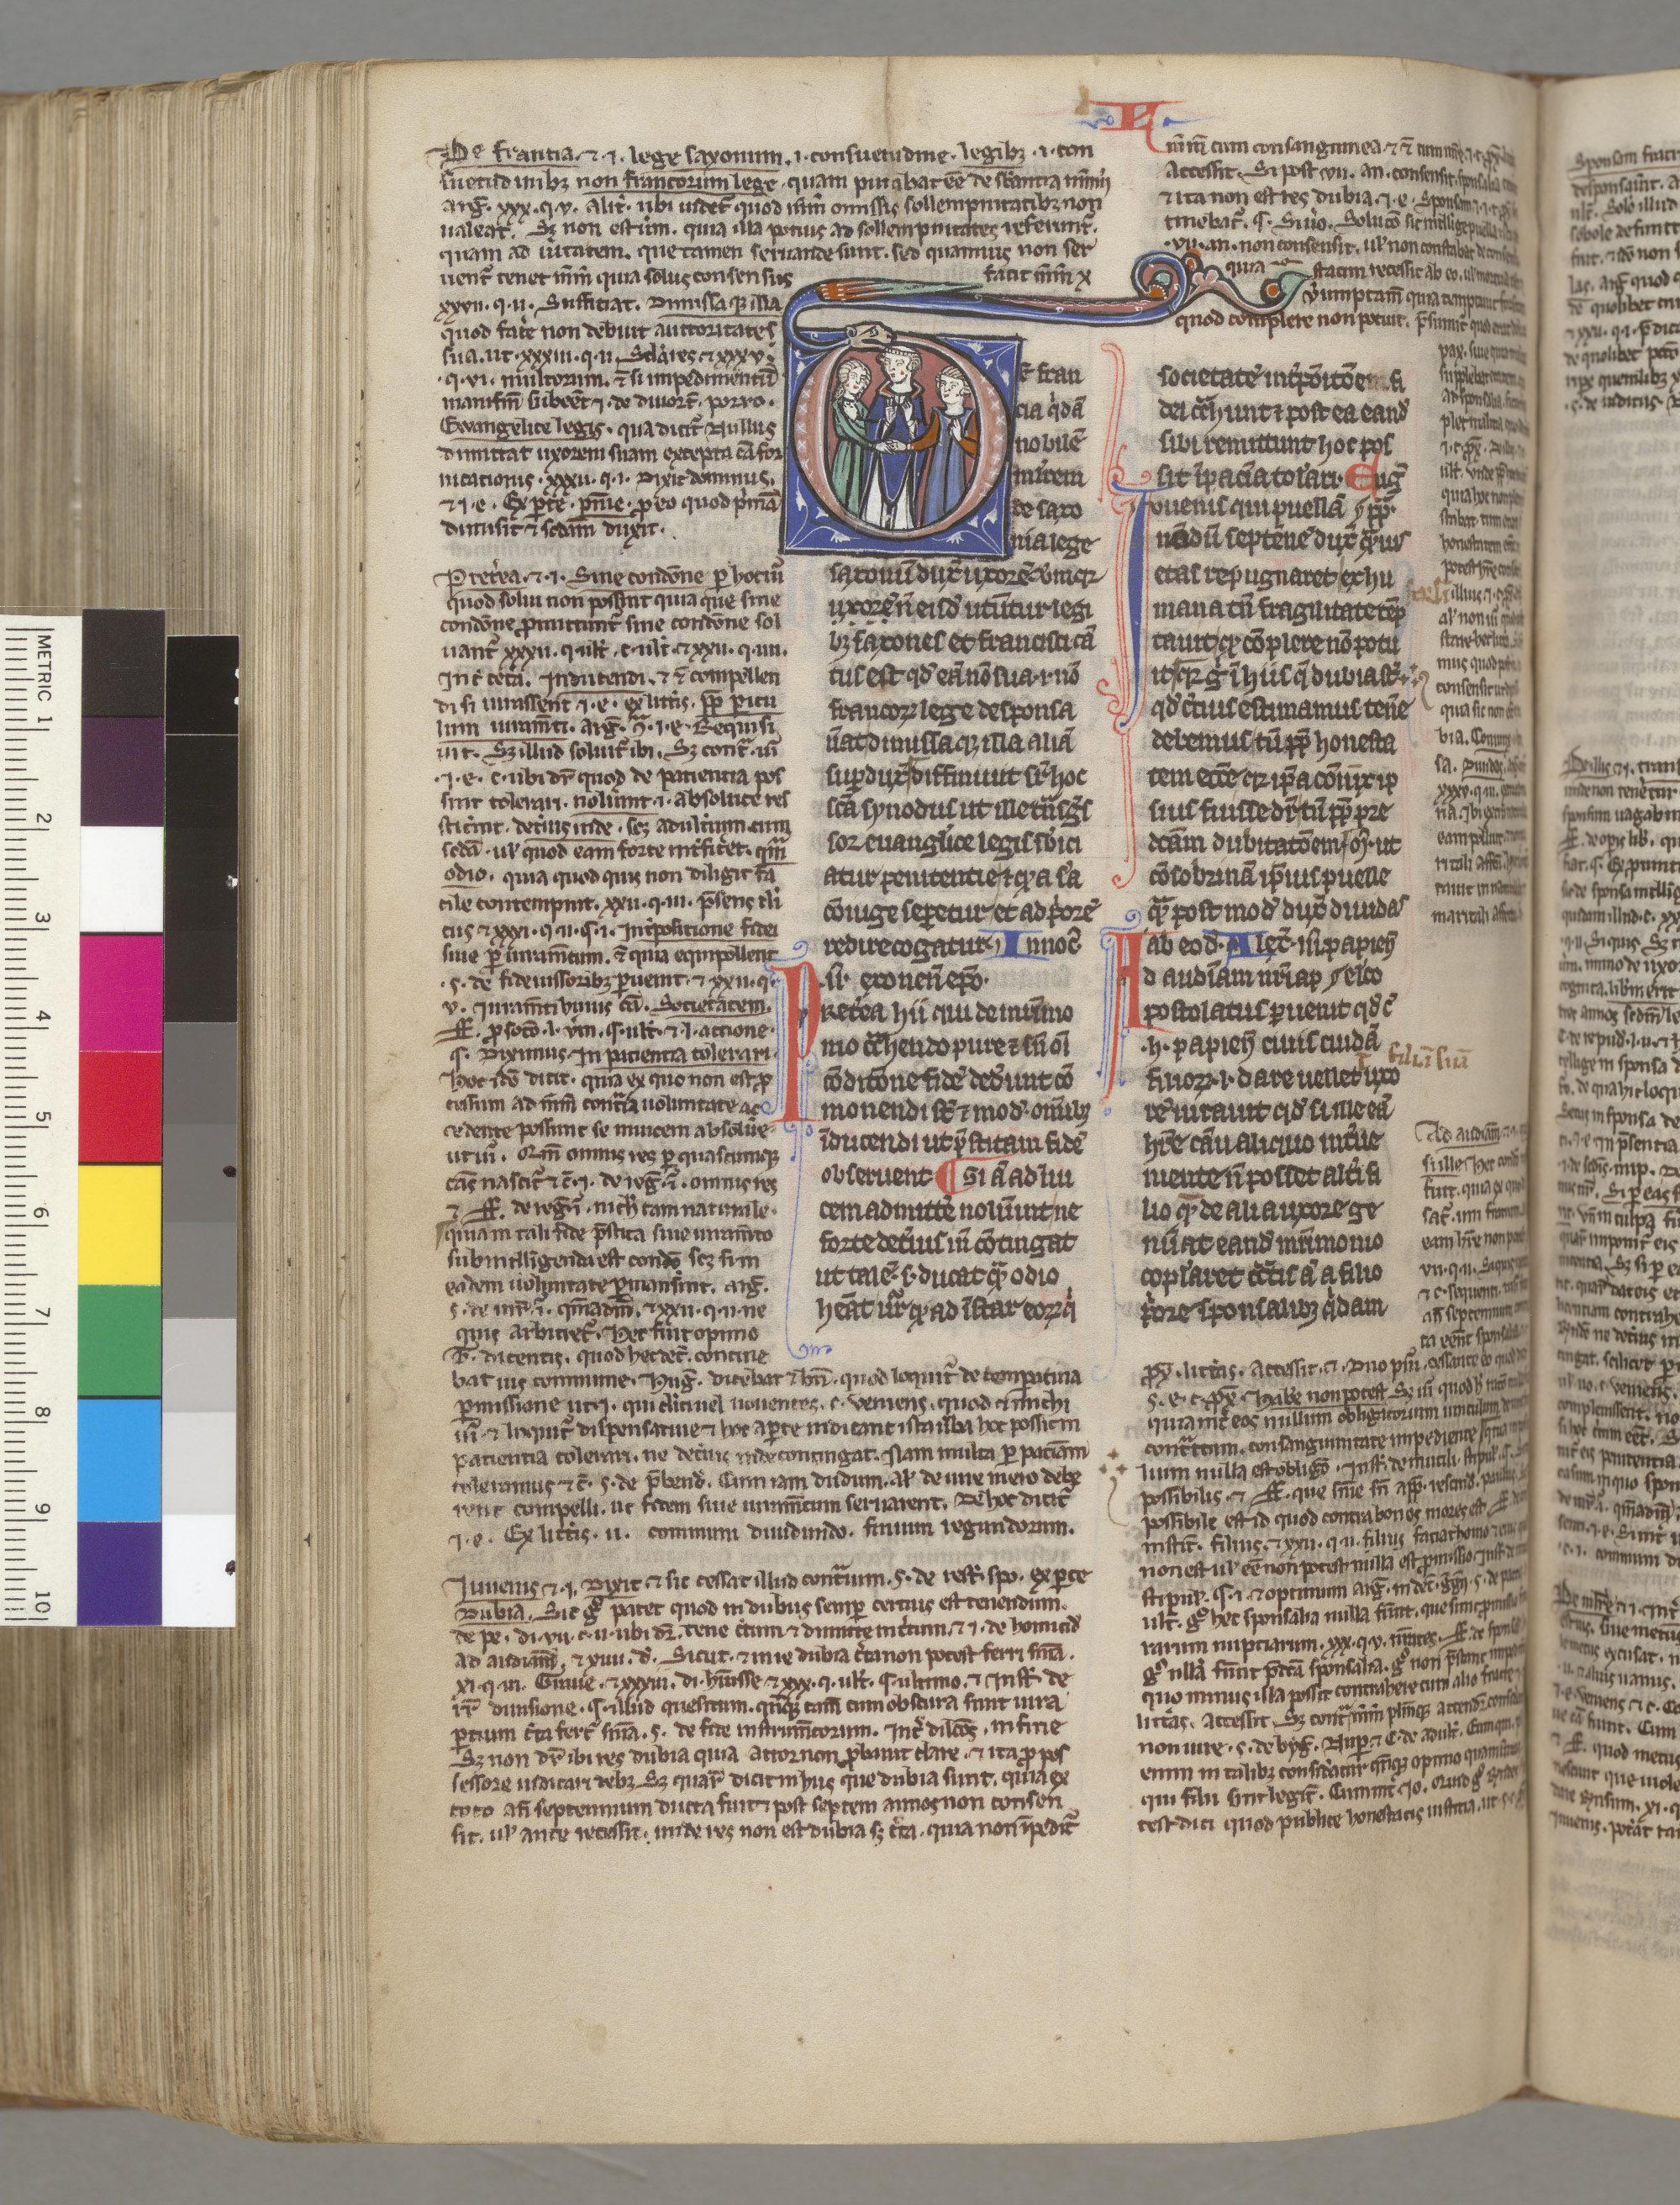 Berkeley, University of California, Robbins Collection, Robbins MS 100, f. 356v